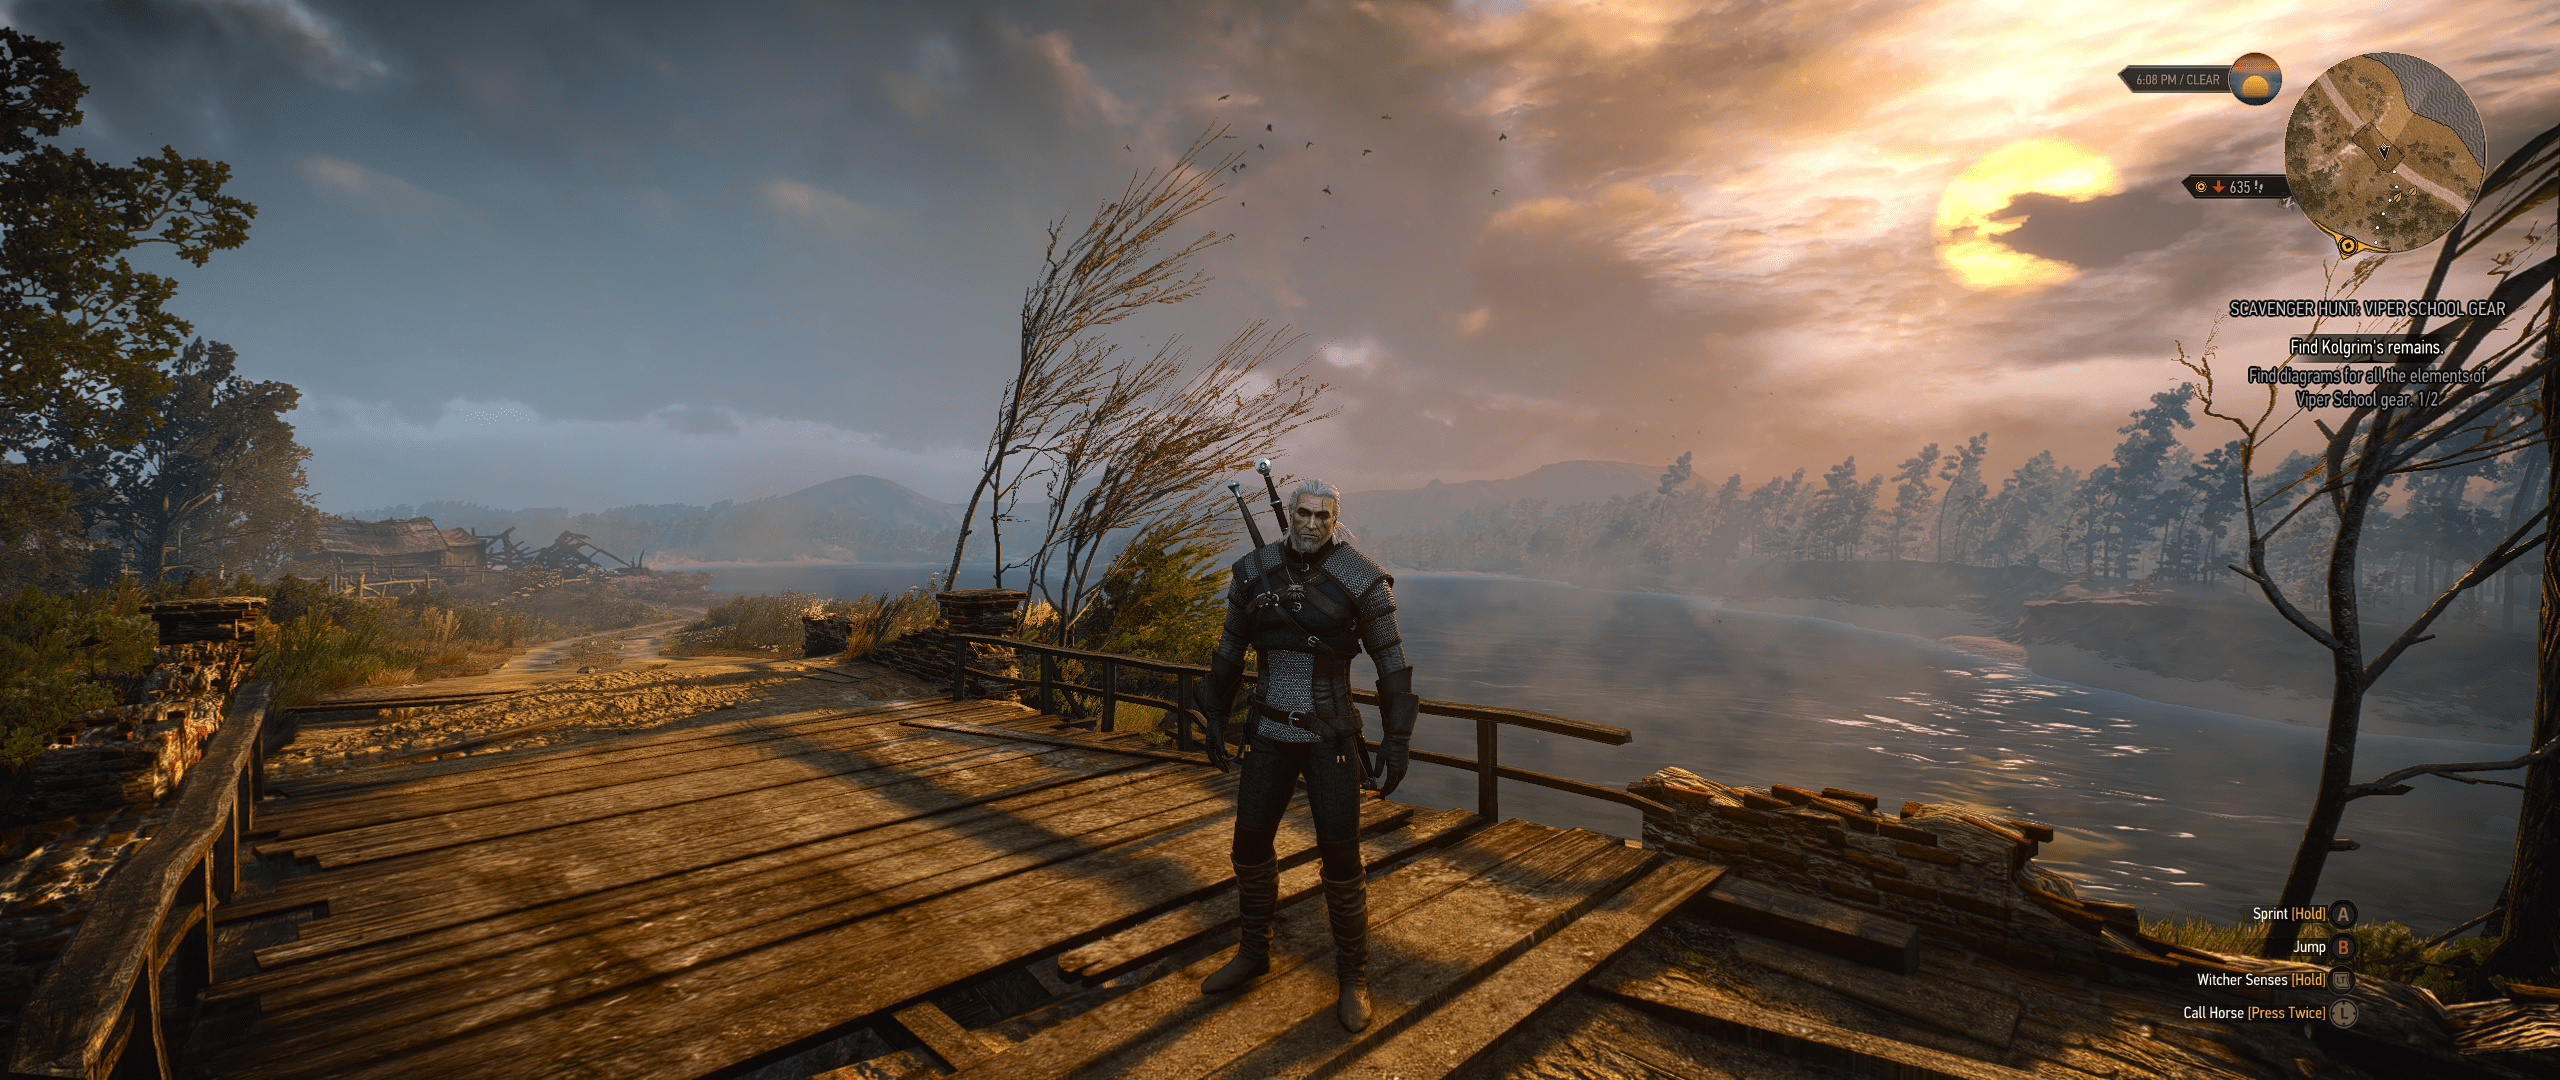 The Witcher 3 Screenshot 2020.01.25 - 11.42.23.43.png